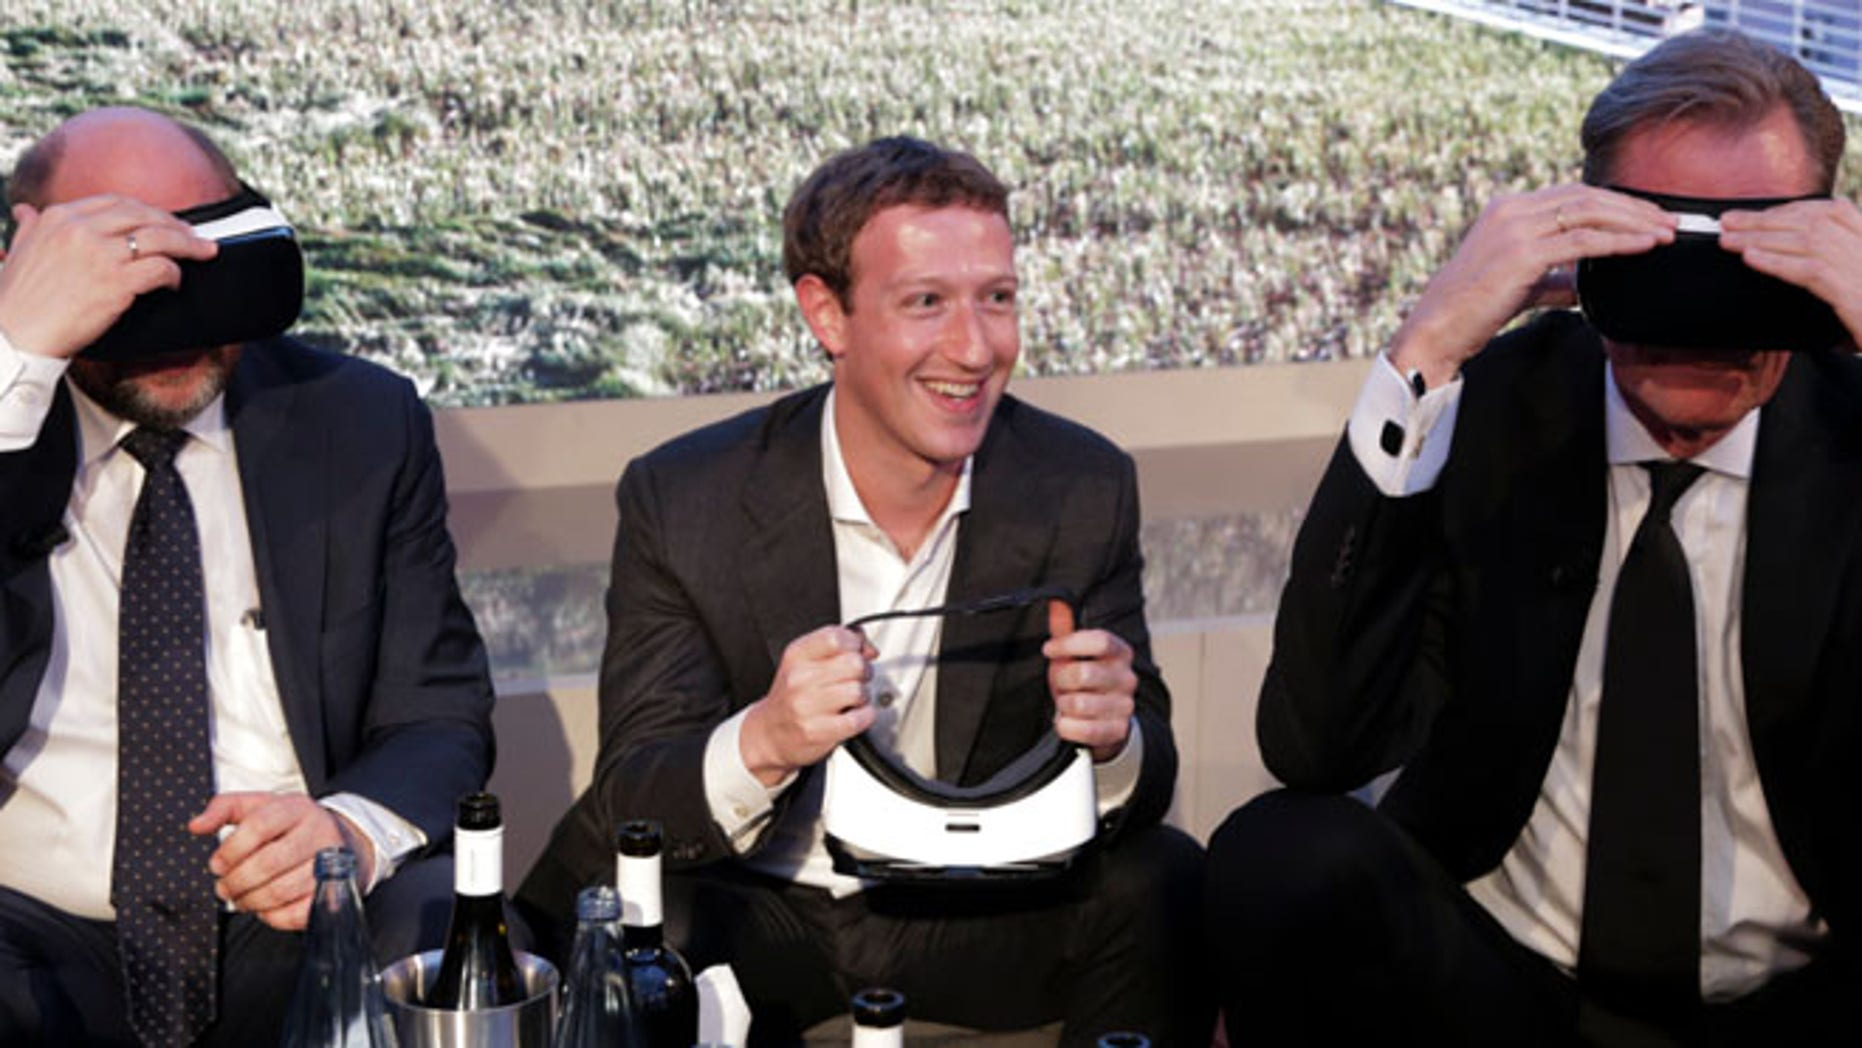 Martin Schulz, President of the European Parliament, Facebook founder and CEO Mark Zuckerberg, Mathias Doepfner, CEO of Axel Springer SE and publisher Friede Springer (L-R) try Gear VR virtual reality headsets during the awards ceremony of the newly established Axel Springer Award in Berlin